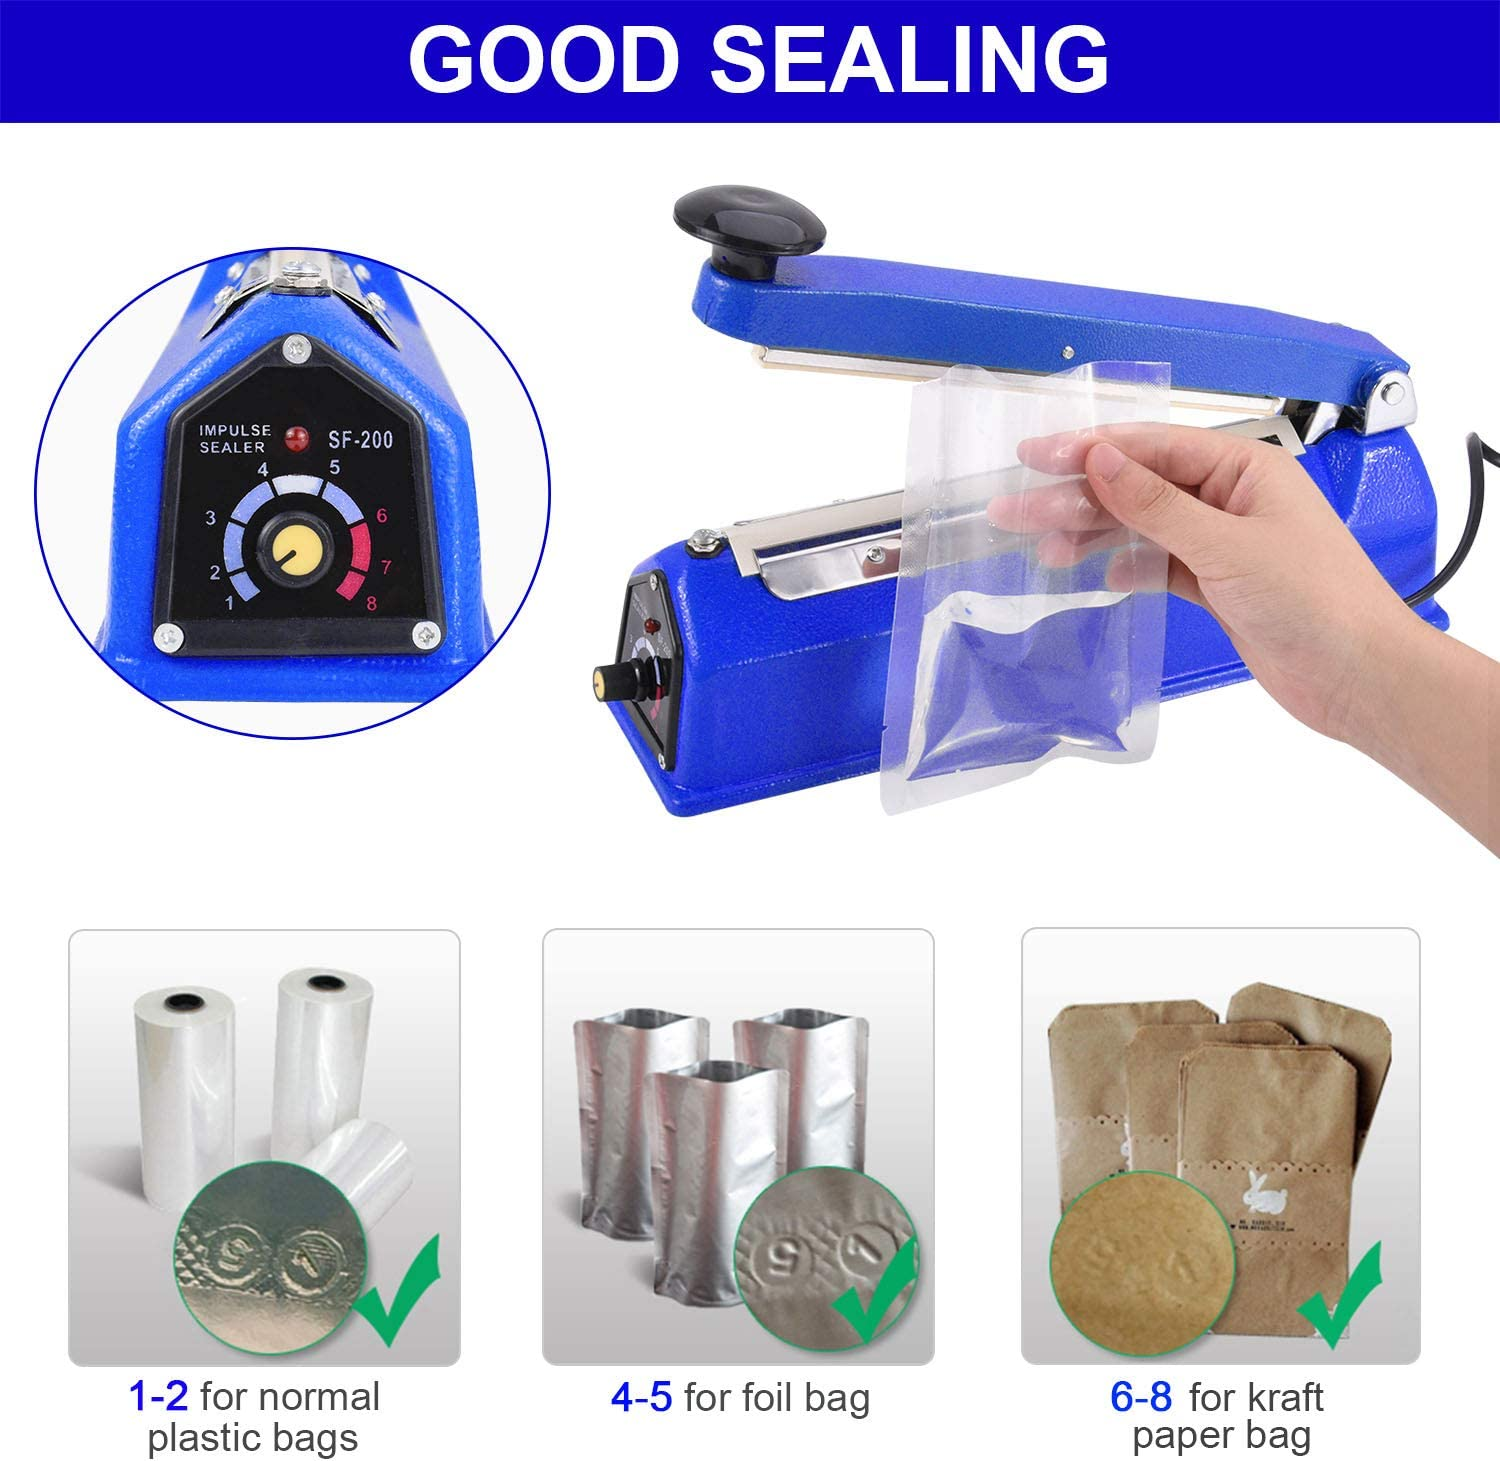 Manual Poly Bag Sealing Machine w//Adjustable Timer Electric Heat Seal Closer with 50Pcs 4X6 Inch Shrink Wrap Bag and 2 Free Replacement Kit Suteck 8 inch Impulse Bag Sealer